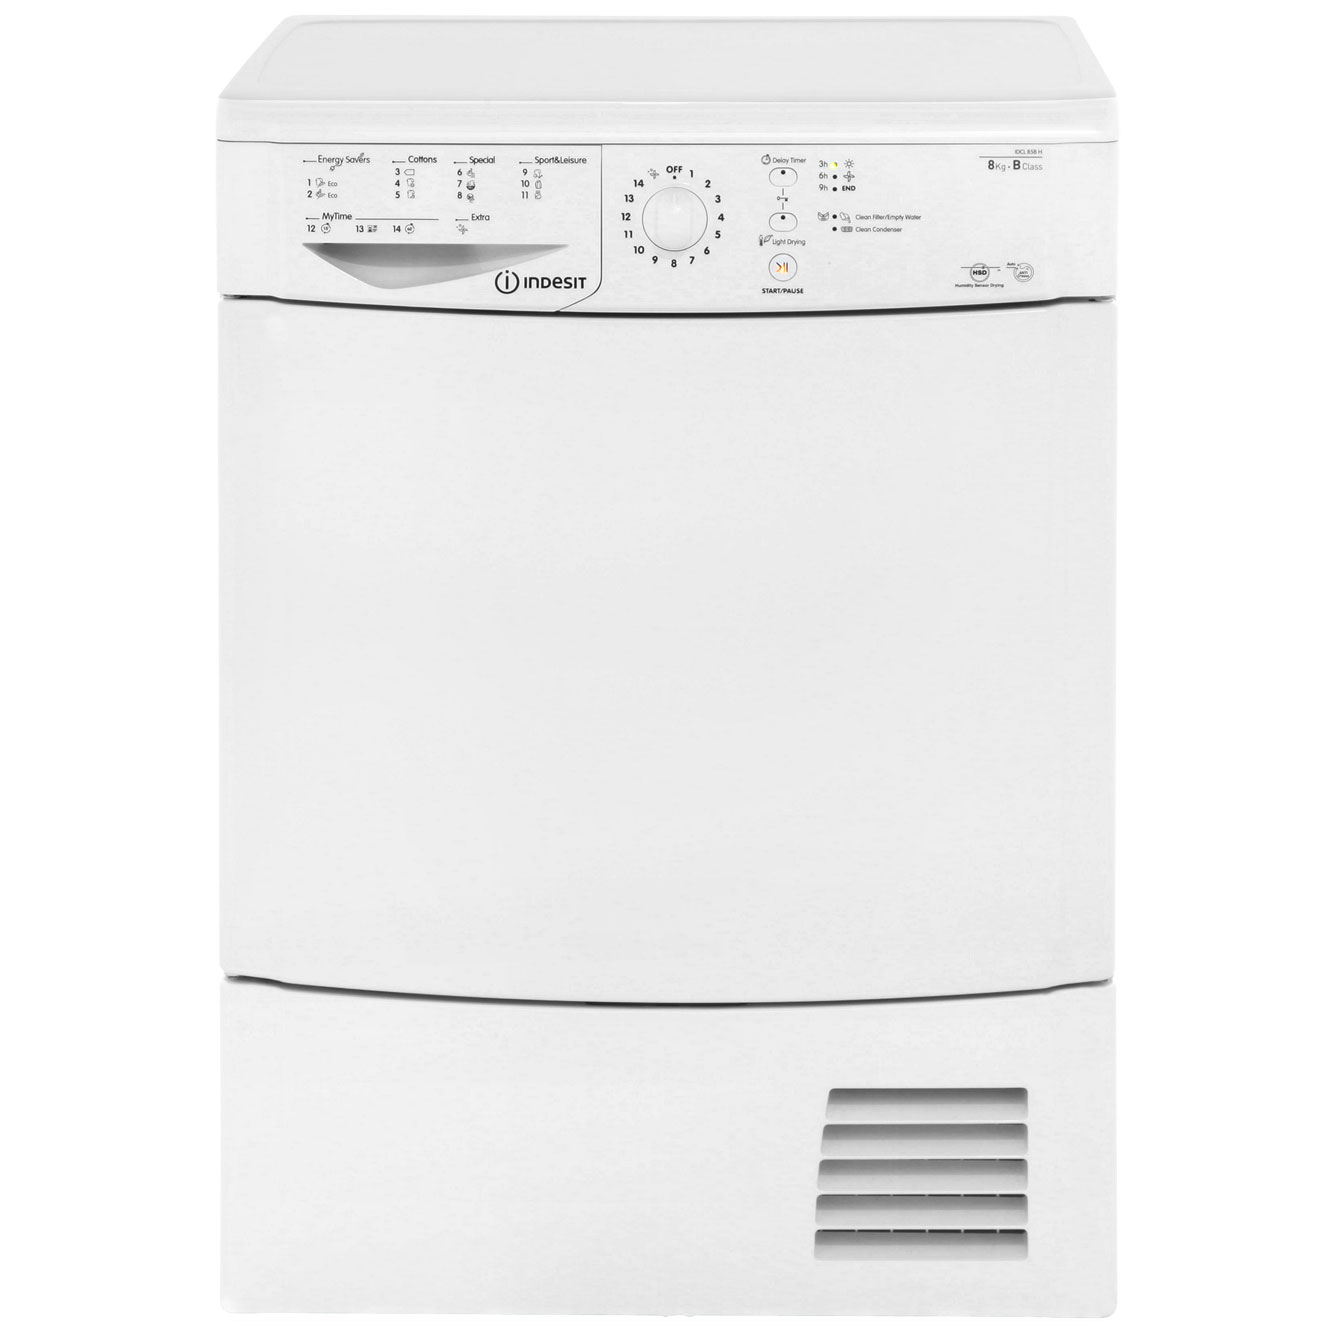 Idcl85bhwh indesit tumble dryer 8kg b ao buycottarizona Choice Image